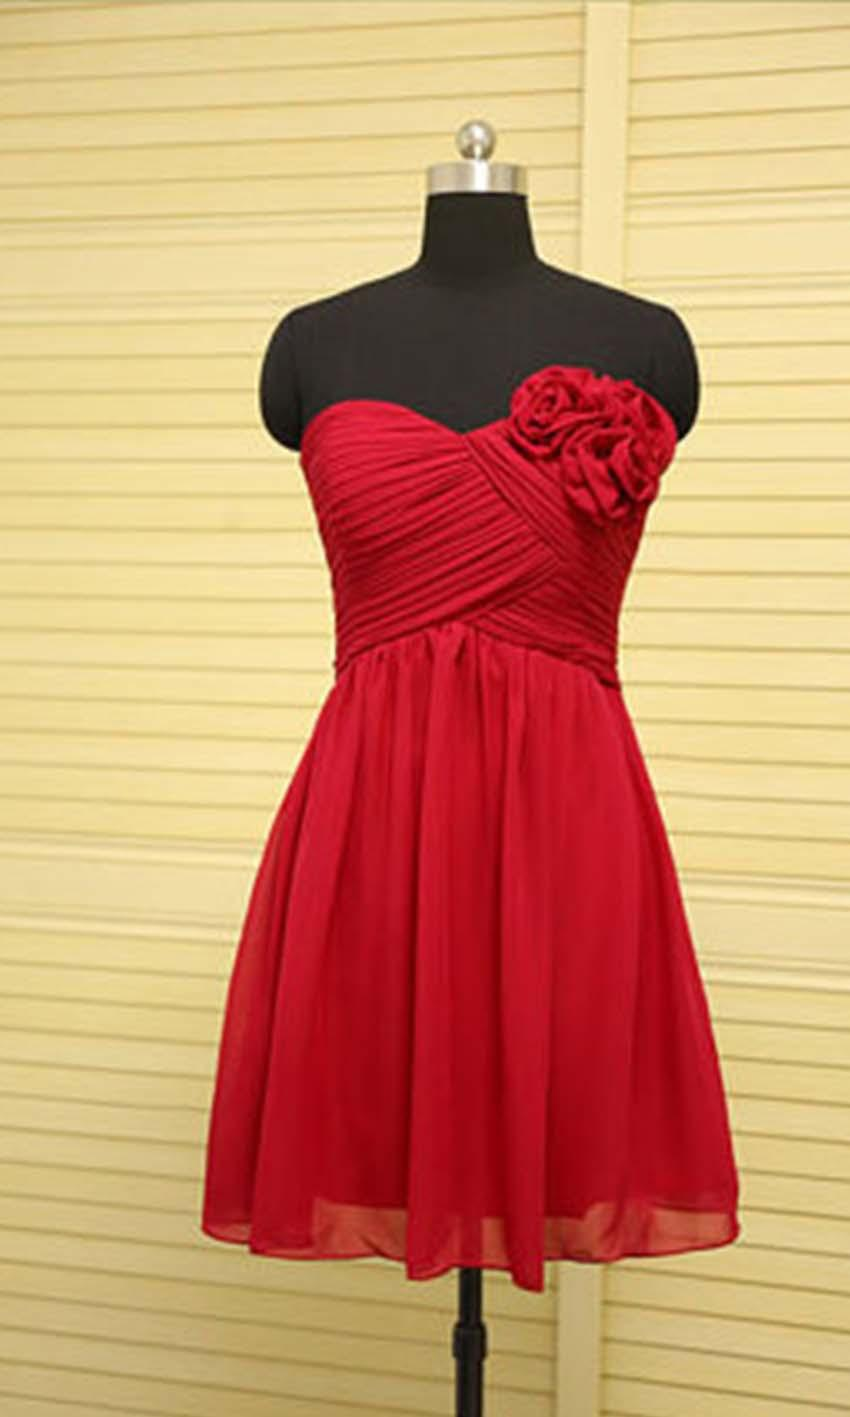 Hochzeit - Pretty Sweetheart Short Red Bridesmaid Dresses KSP384